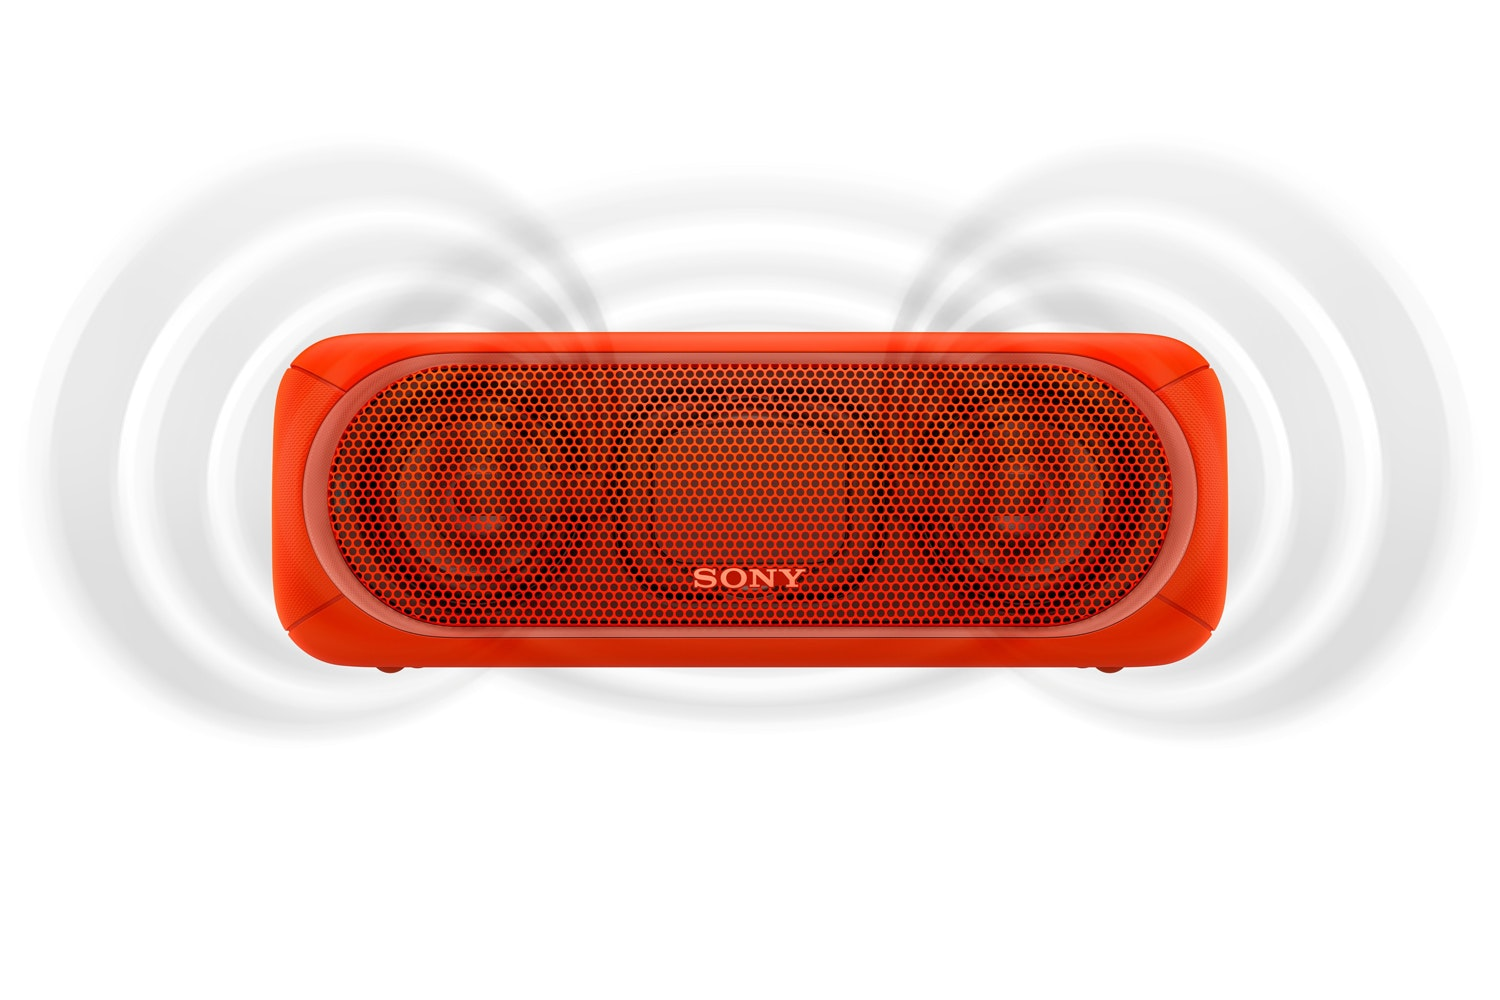 Sony Wireless Speaker | SRSXB40R.EU8